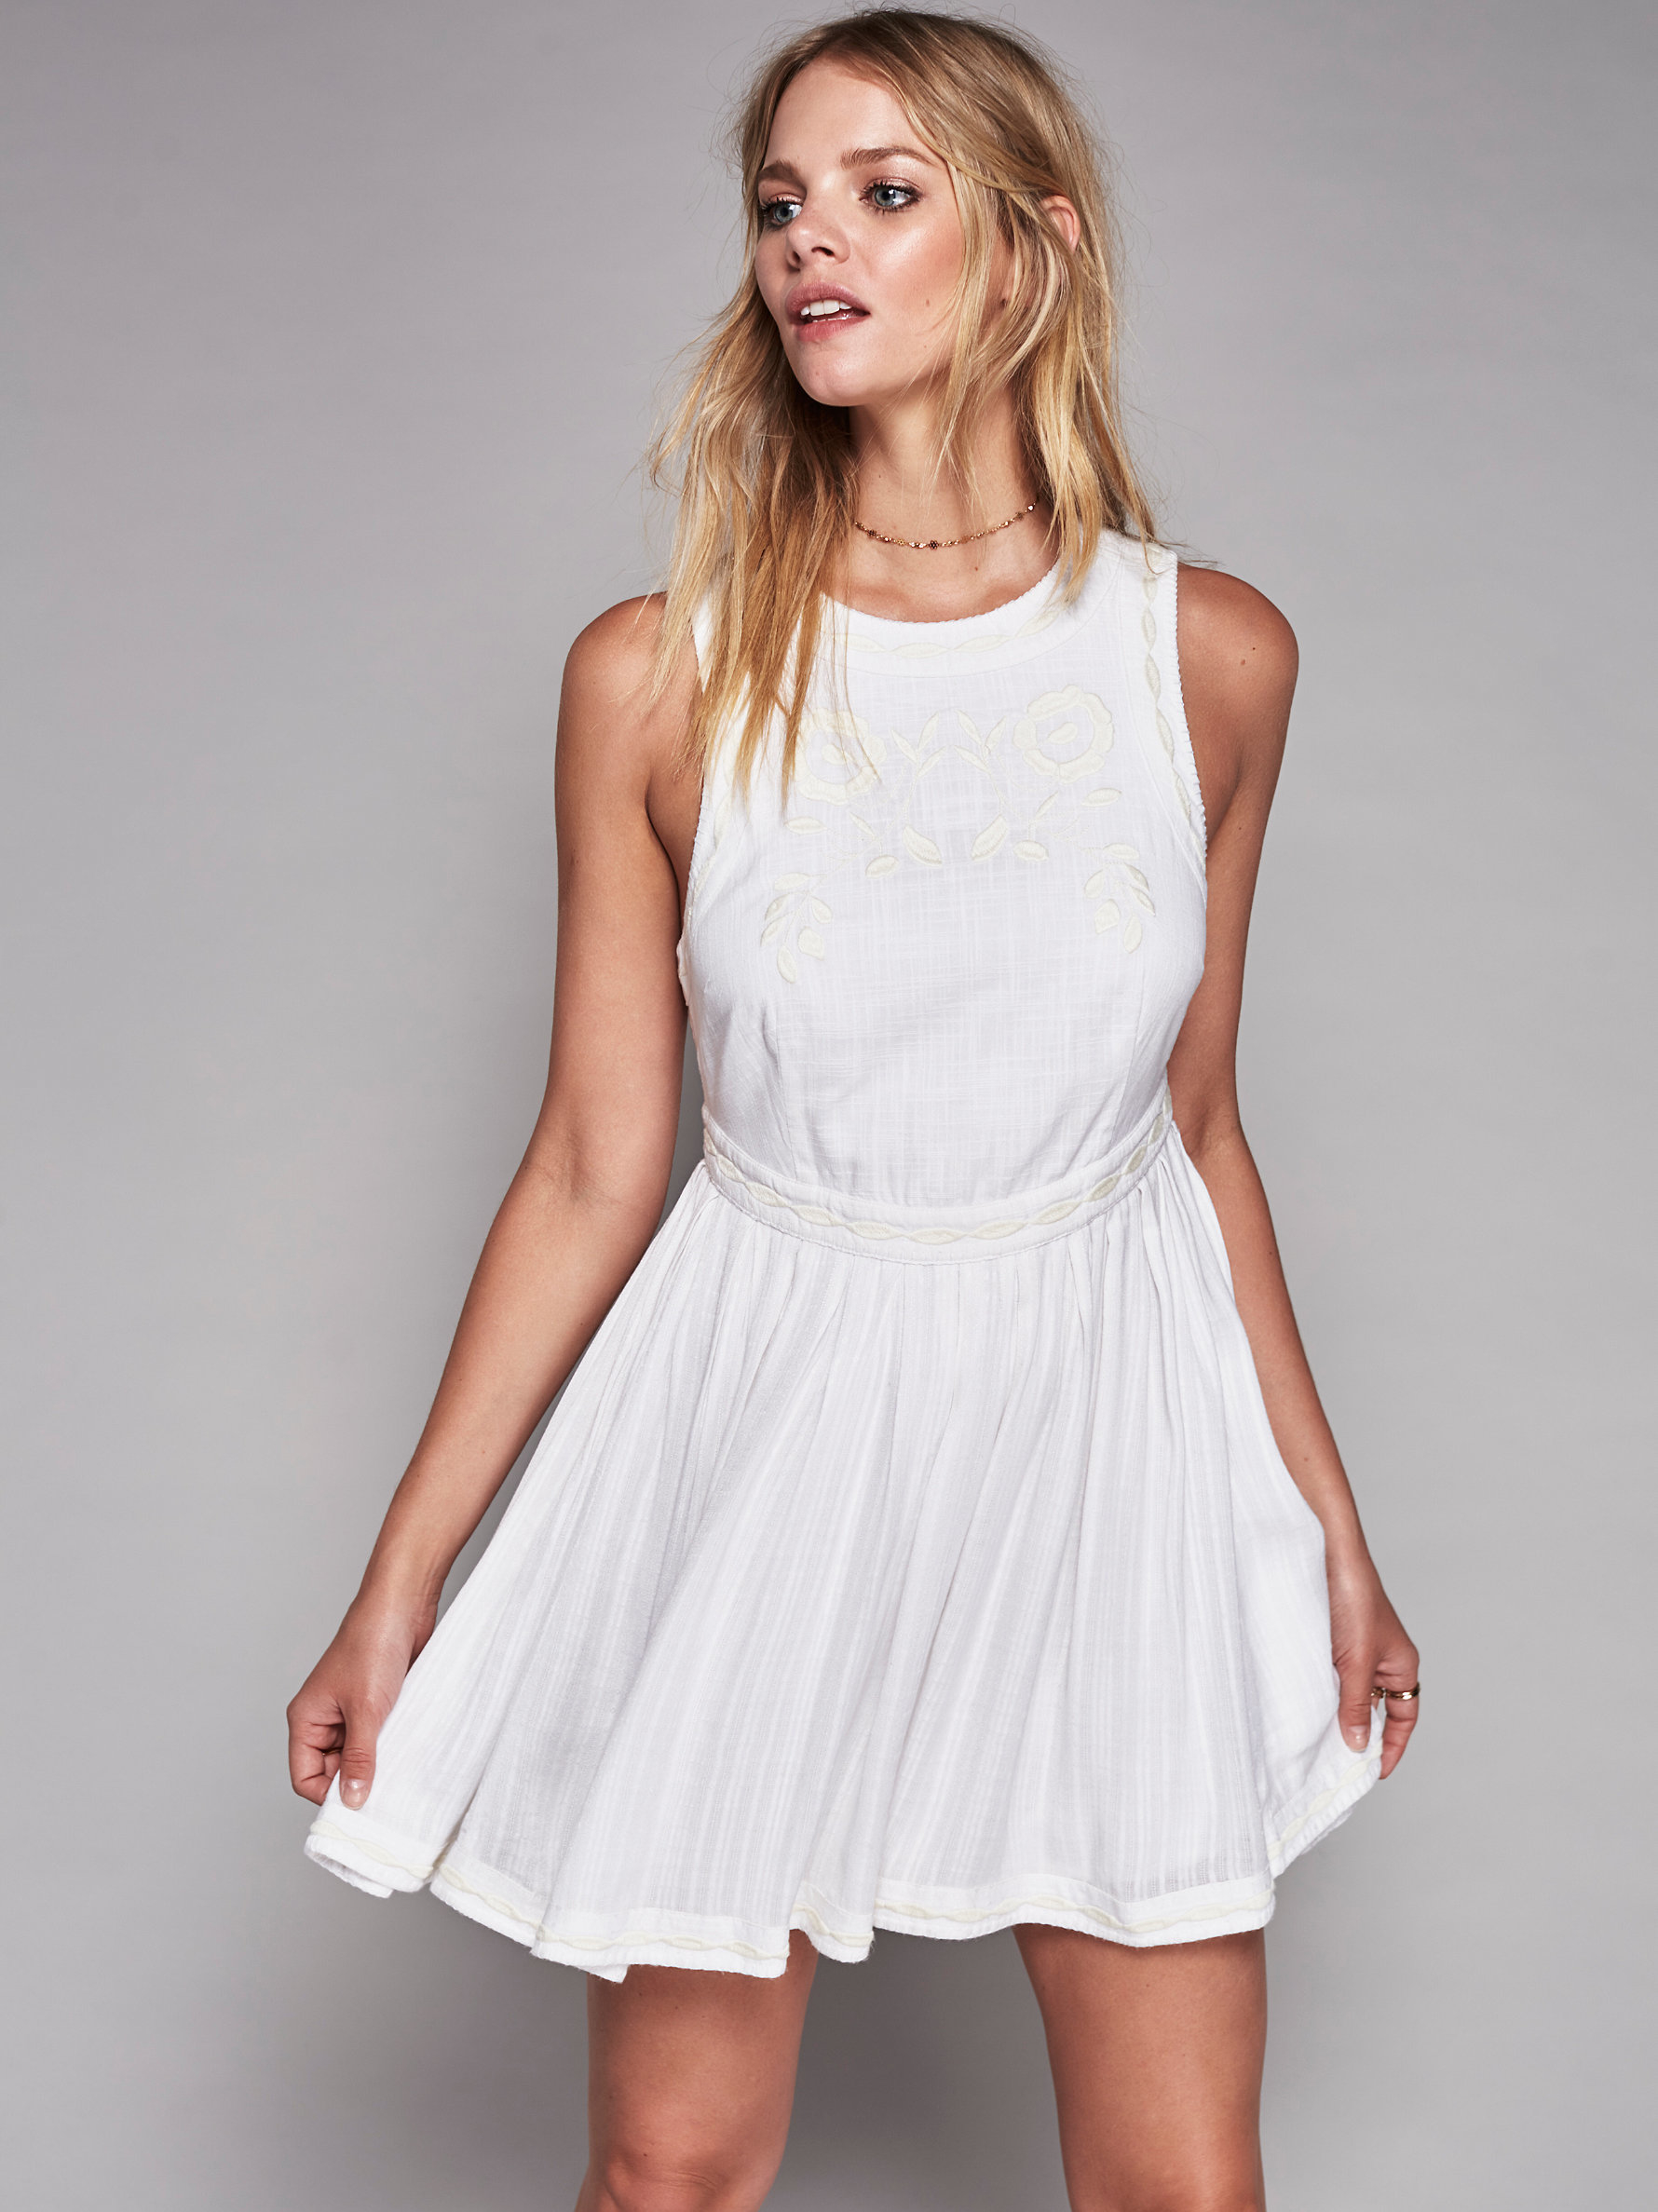 322536be06aa8 Lyst - Free People Birds Of A Feather Dress in White